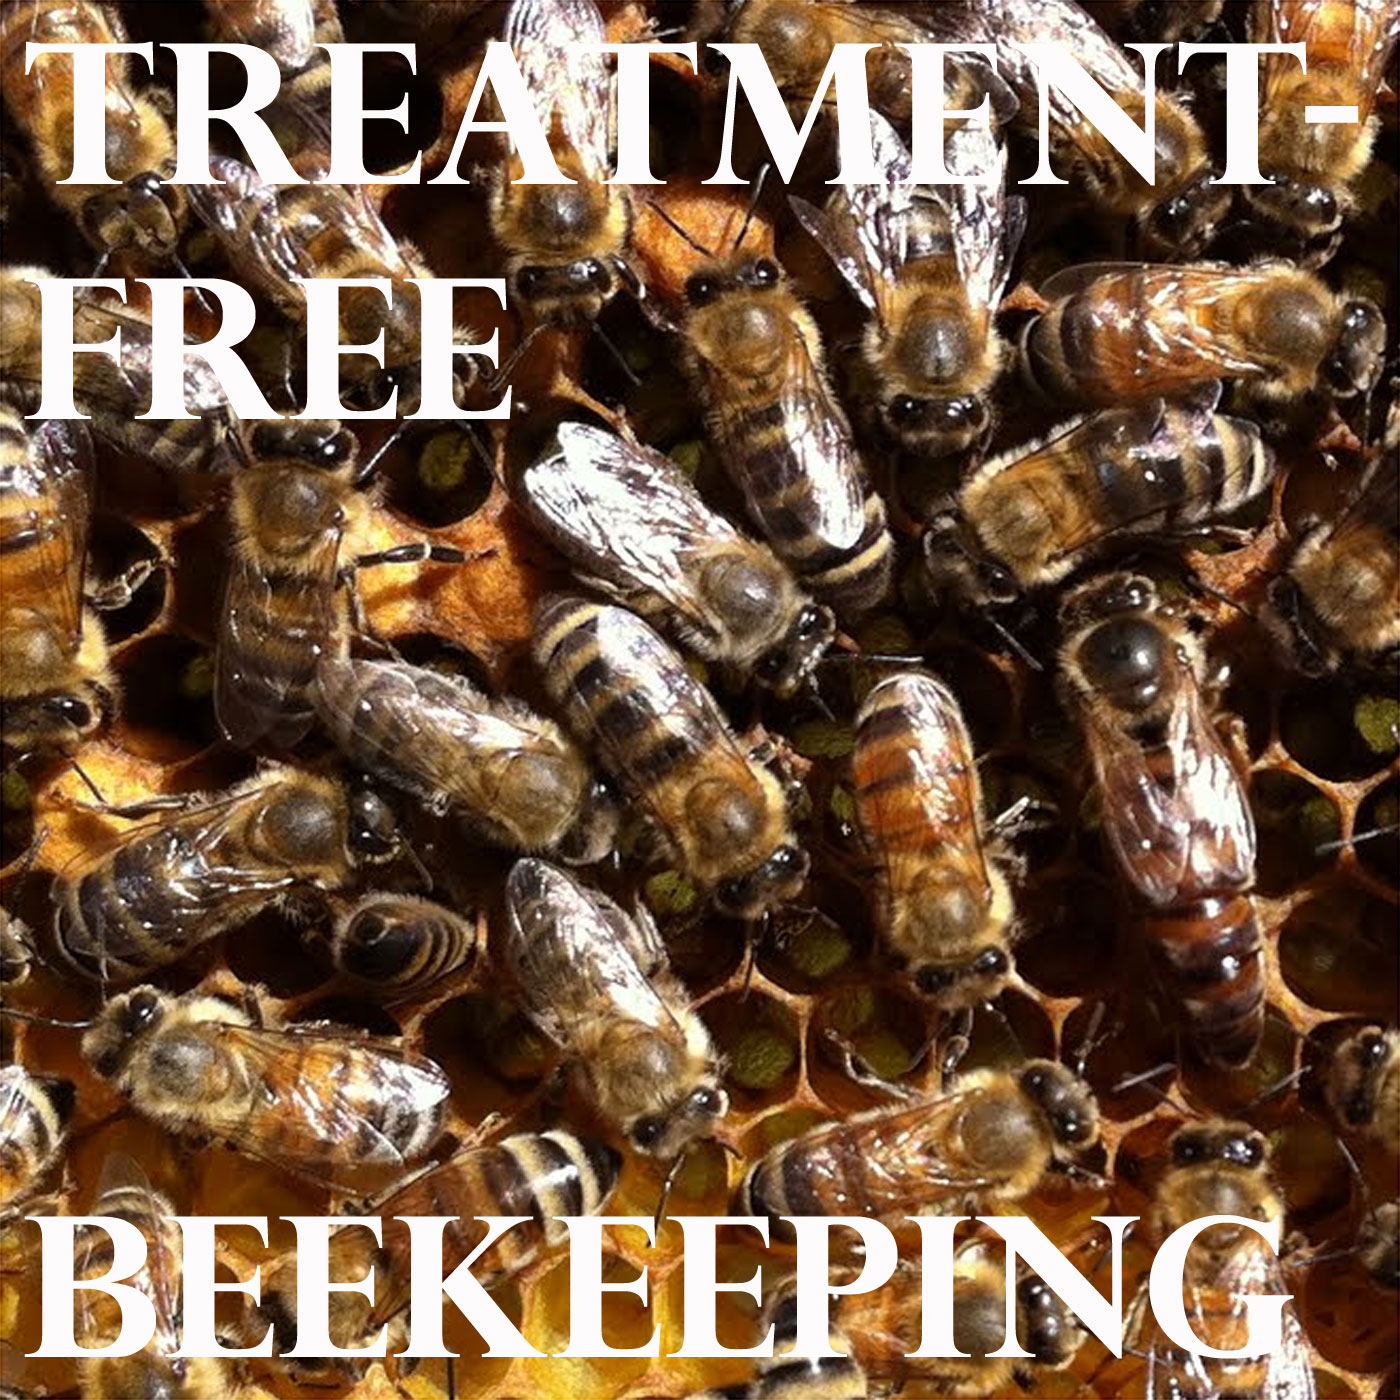 The Treatment-Free Beekeeping Podcast